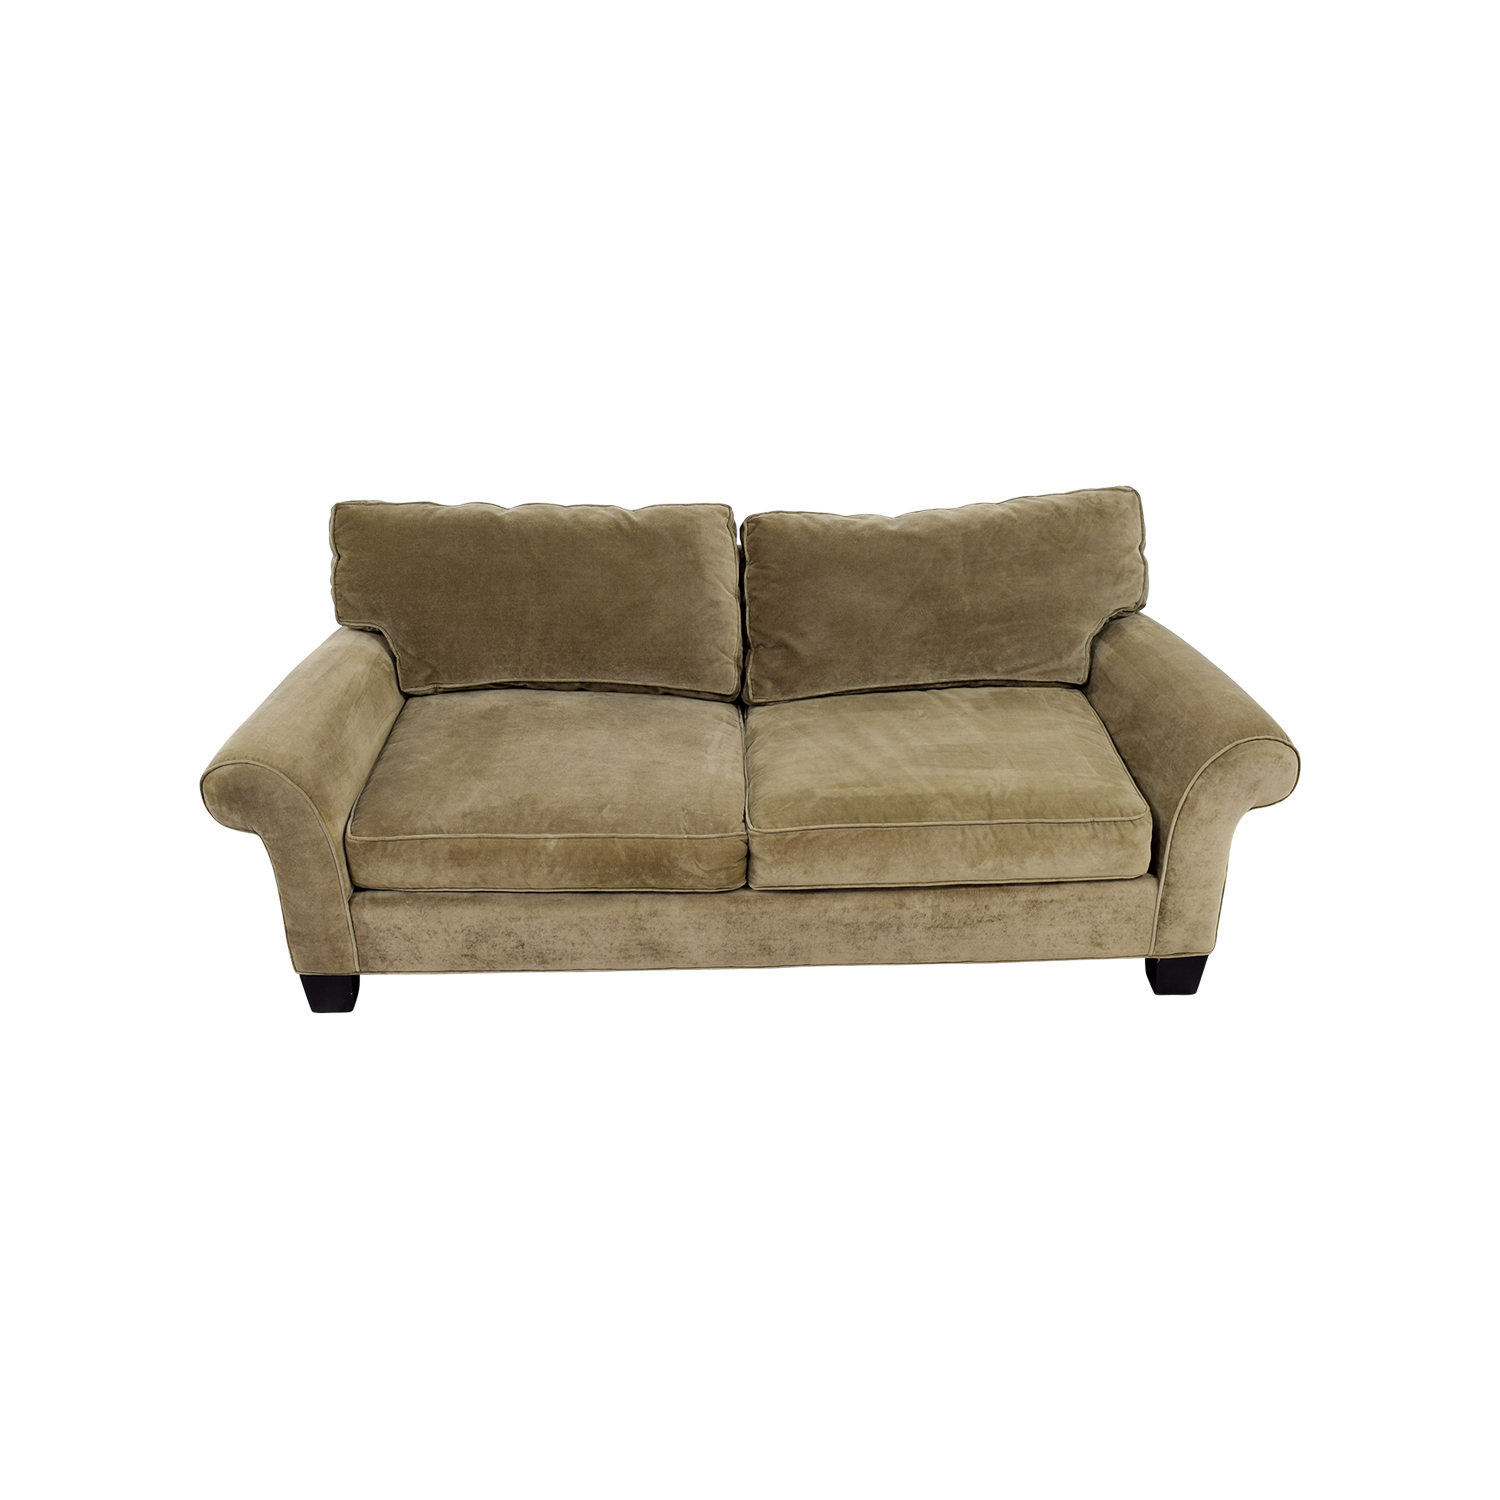 Mitchell Gold + Bob Williams Mitchell Gold + Bob Williams Sofa discount